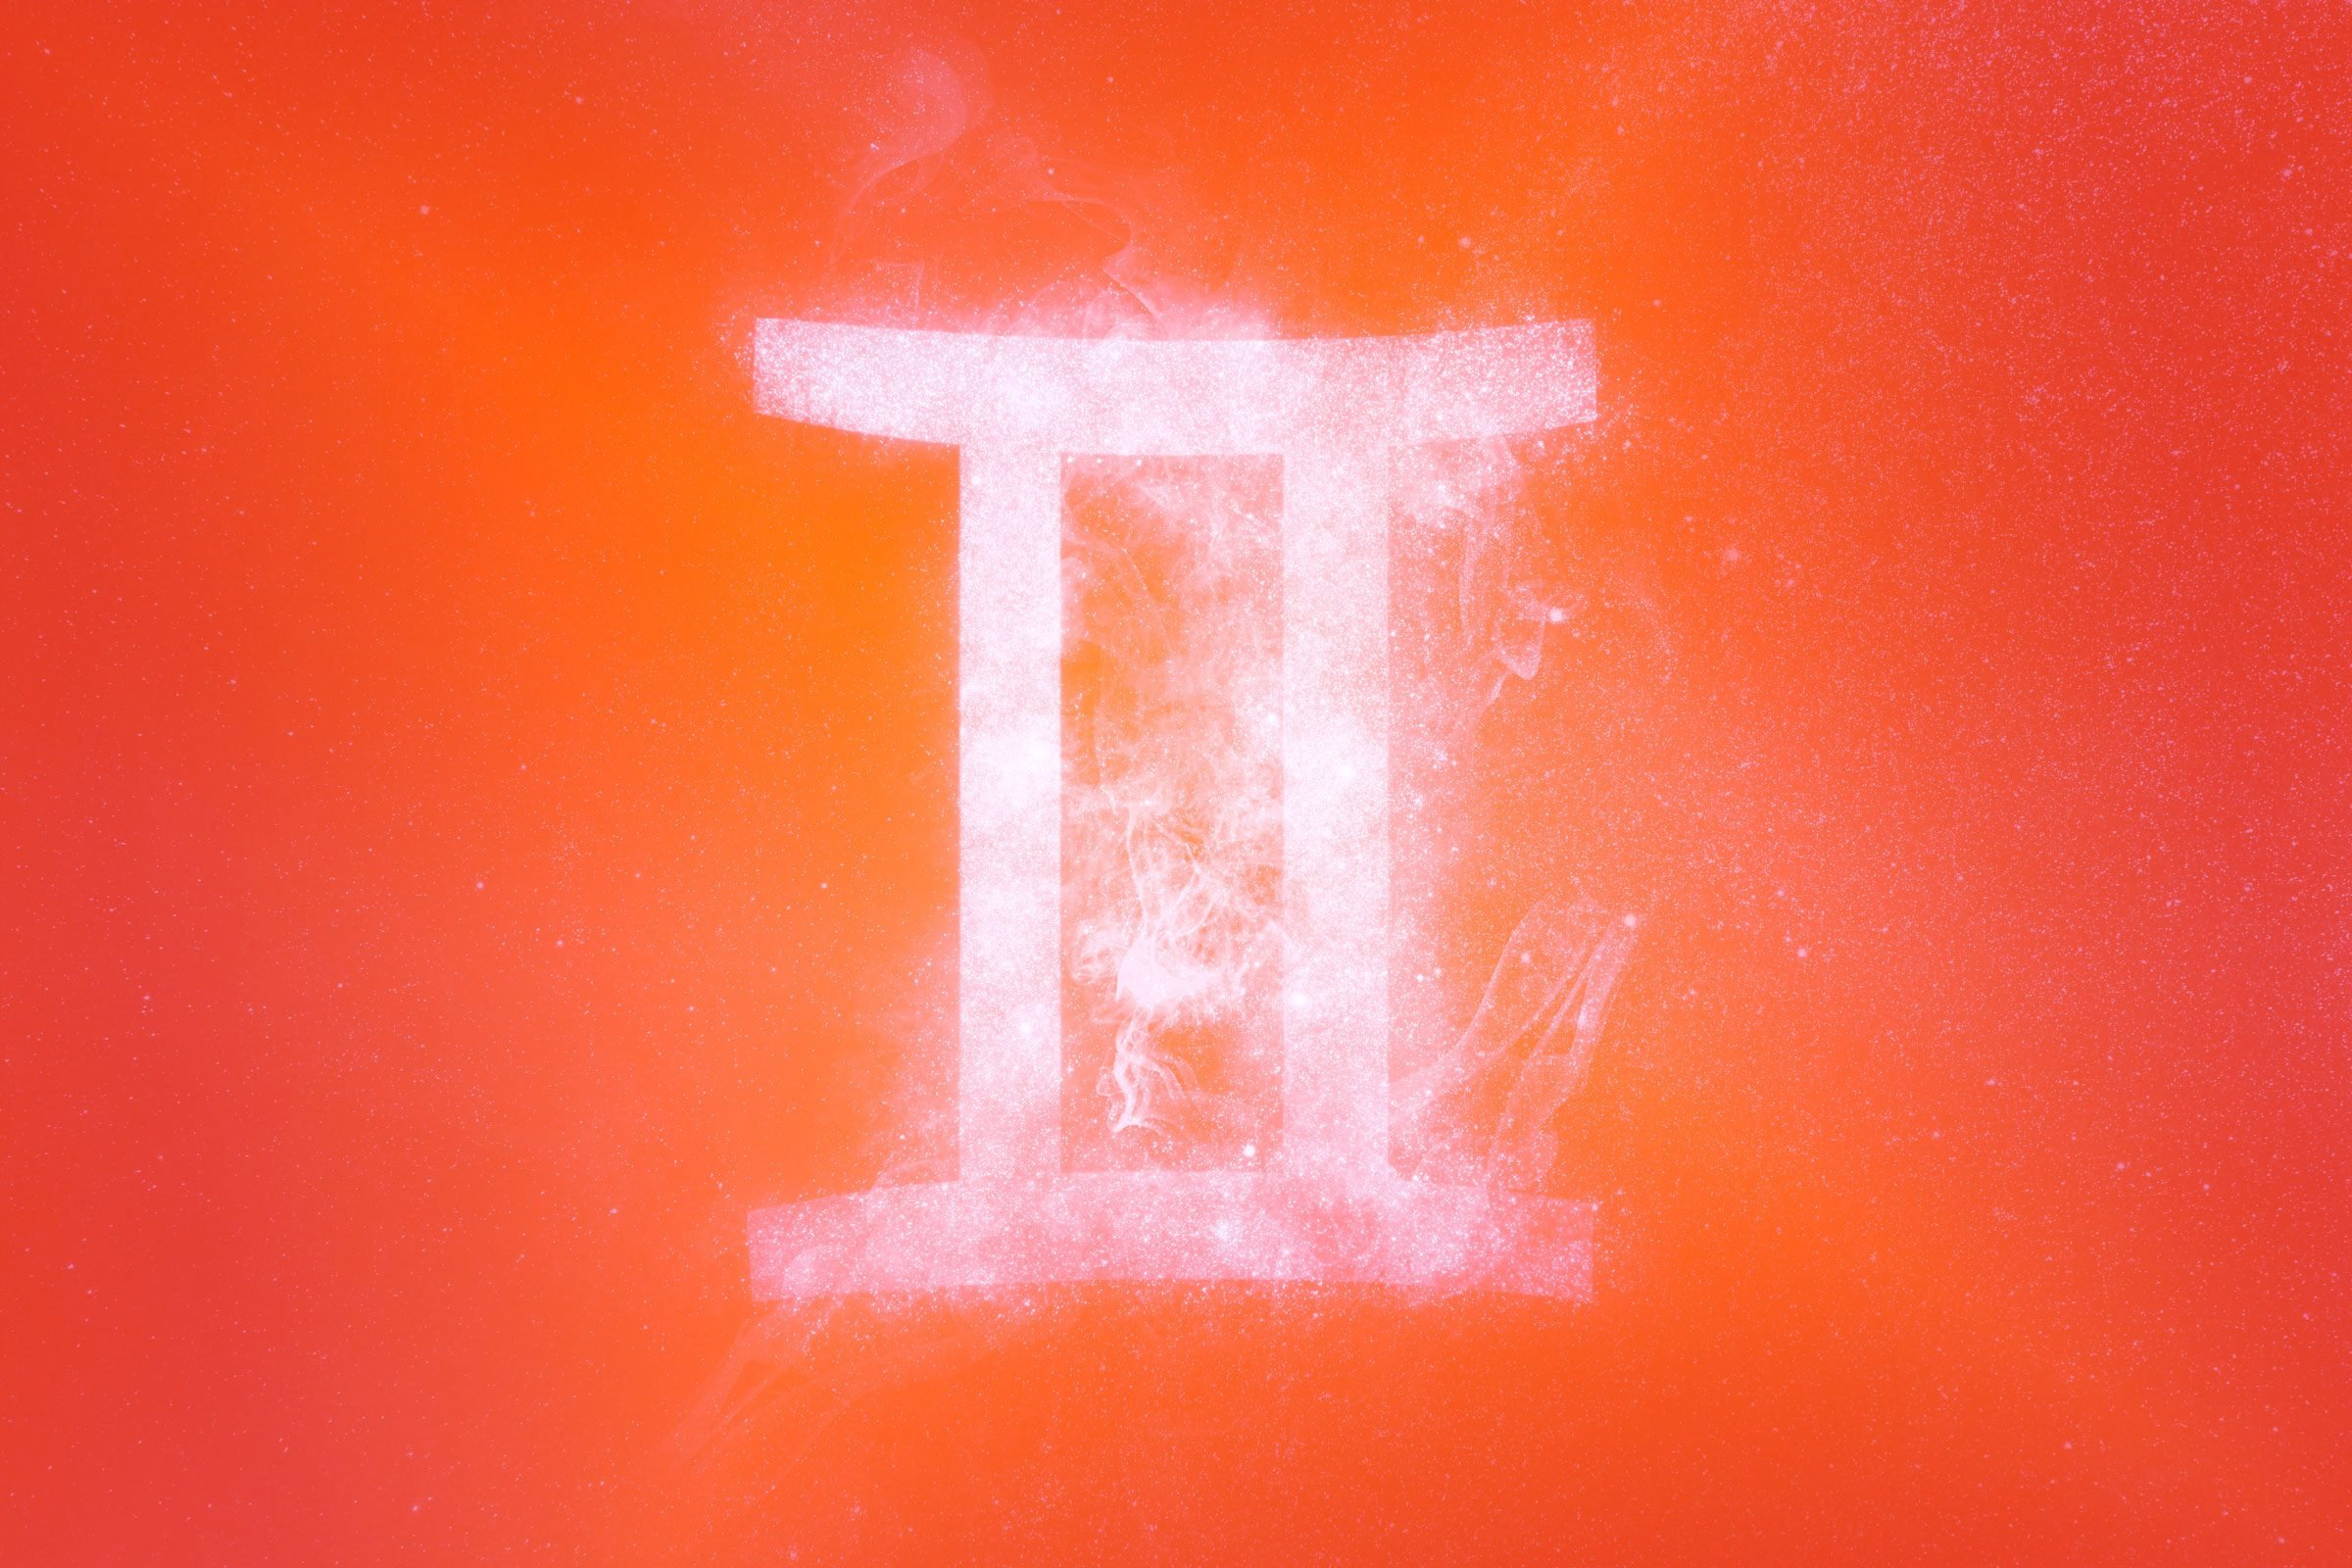 gemini symbol with red-orange gradient overlay